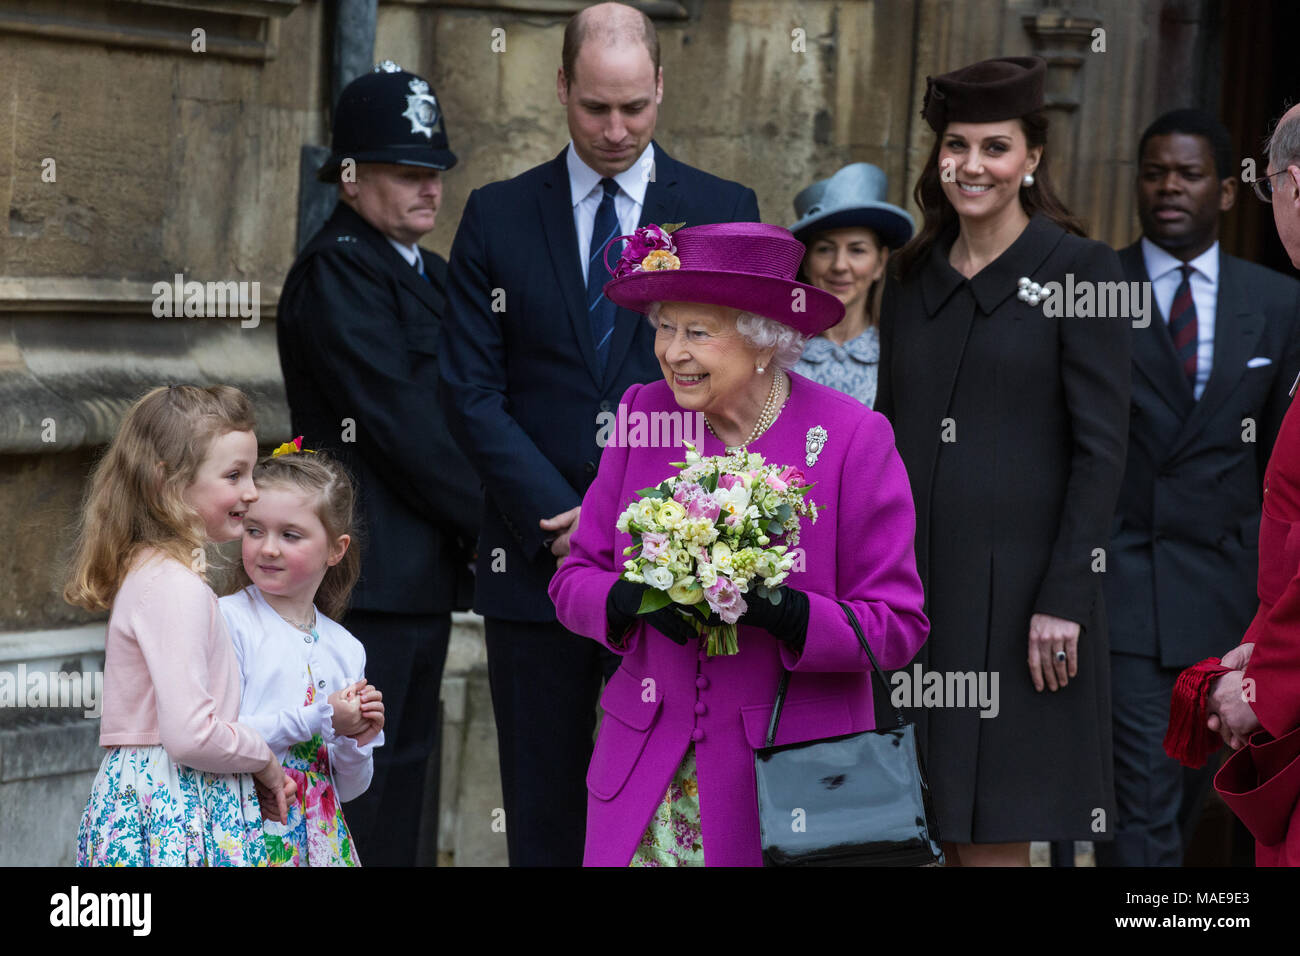 Windsor, UK. 1st April, 2018. The Queen leaves the Easter Sunday service at St George's Chapel in Windsor Castle after being presented with traditional posies of flowers by Amelia Vivian and Madeleine Carleston, both aged 6. Credit: Mark Kerrison/Alamy Live News - Stock Image